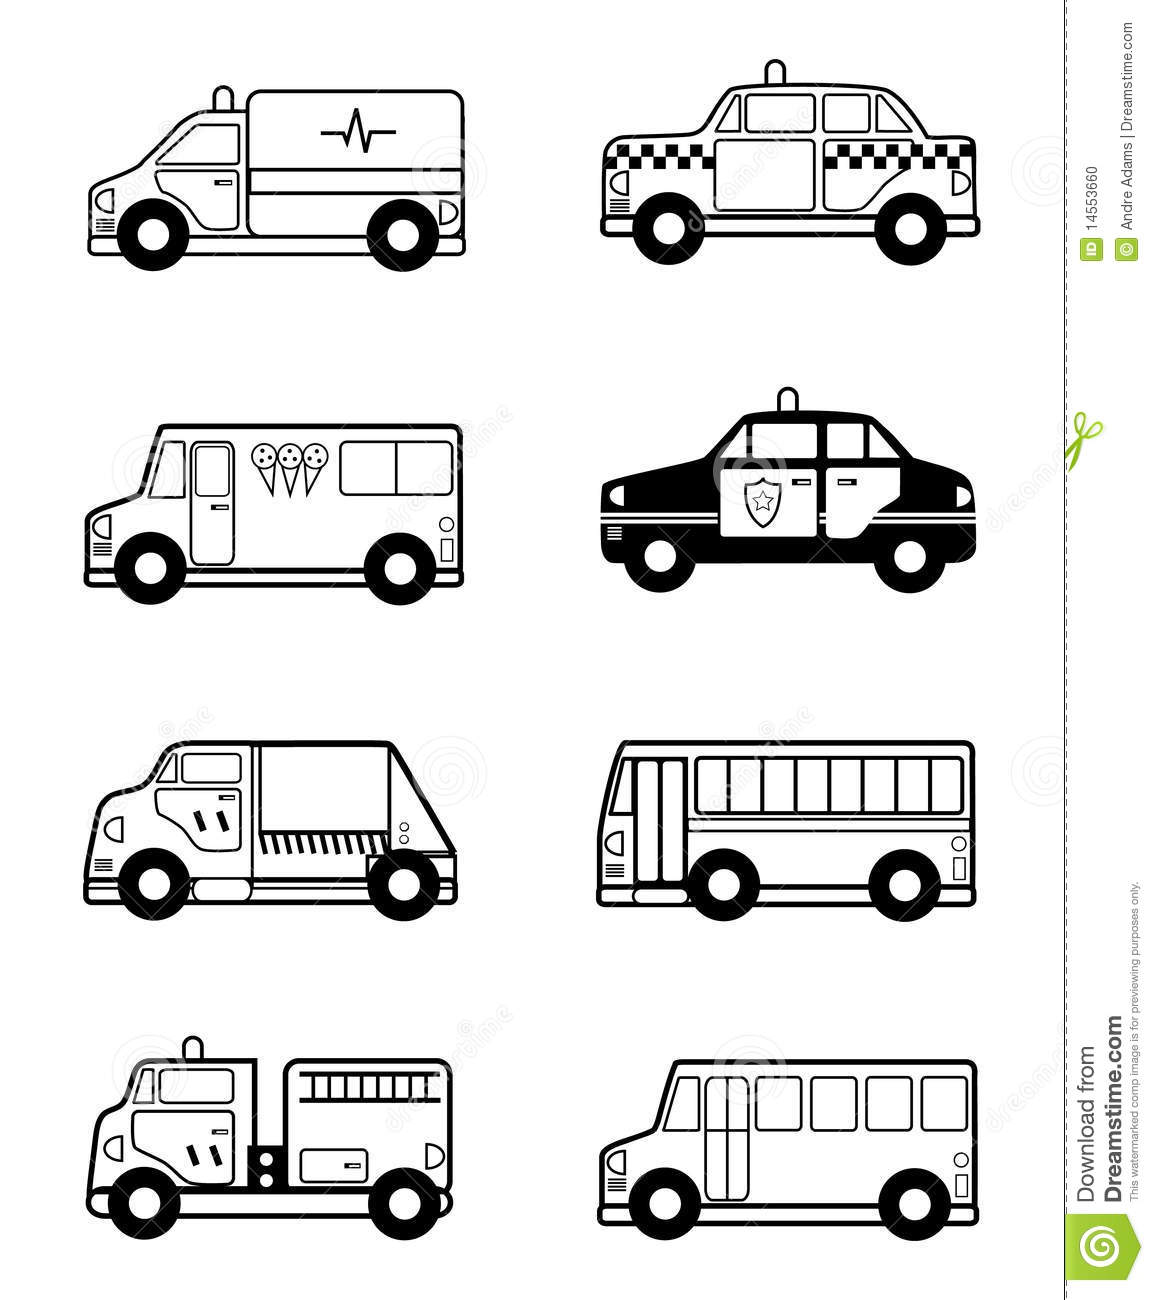 Child Toy Vehicles Outline Stock Vector Illustration Of Book